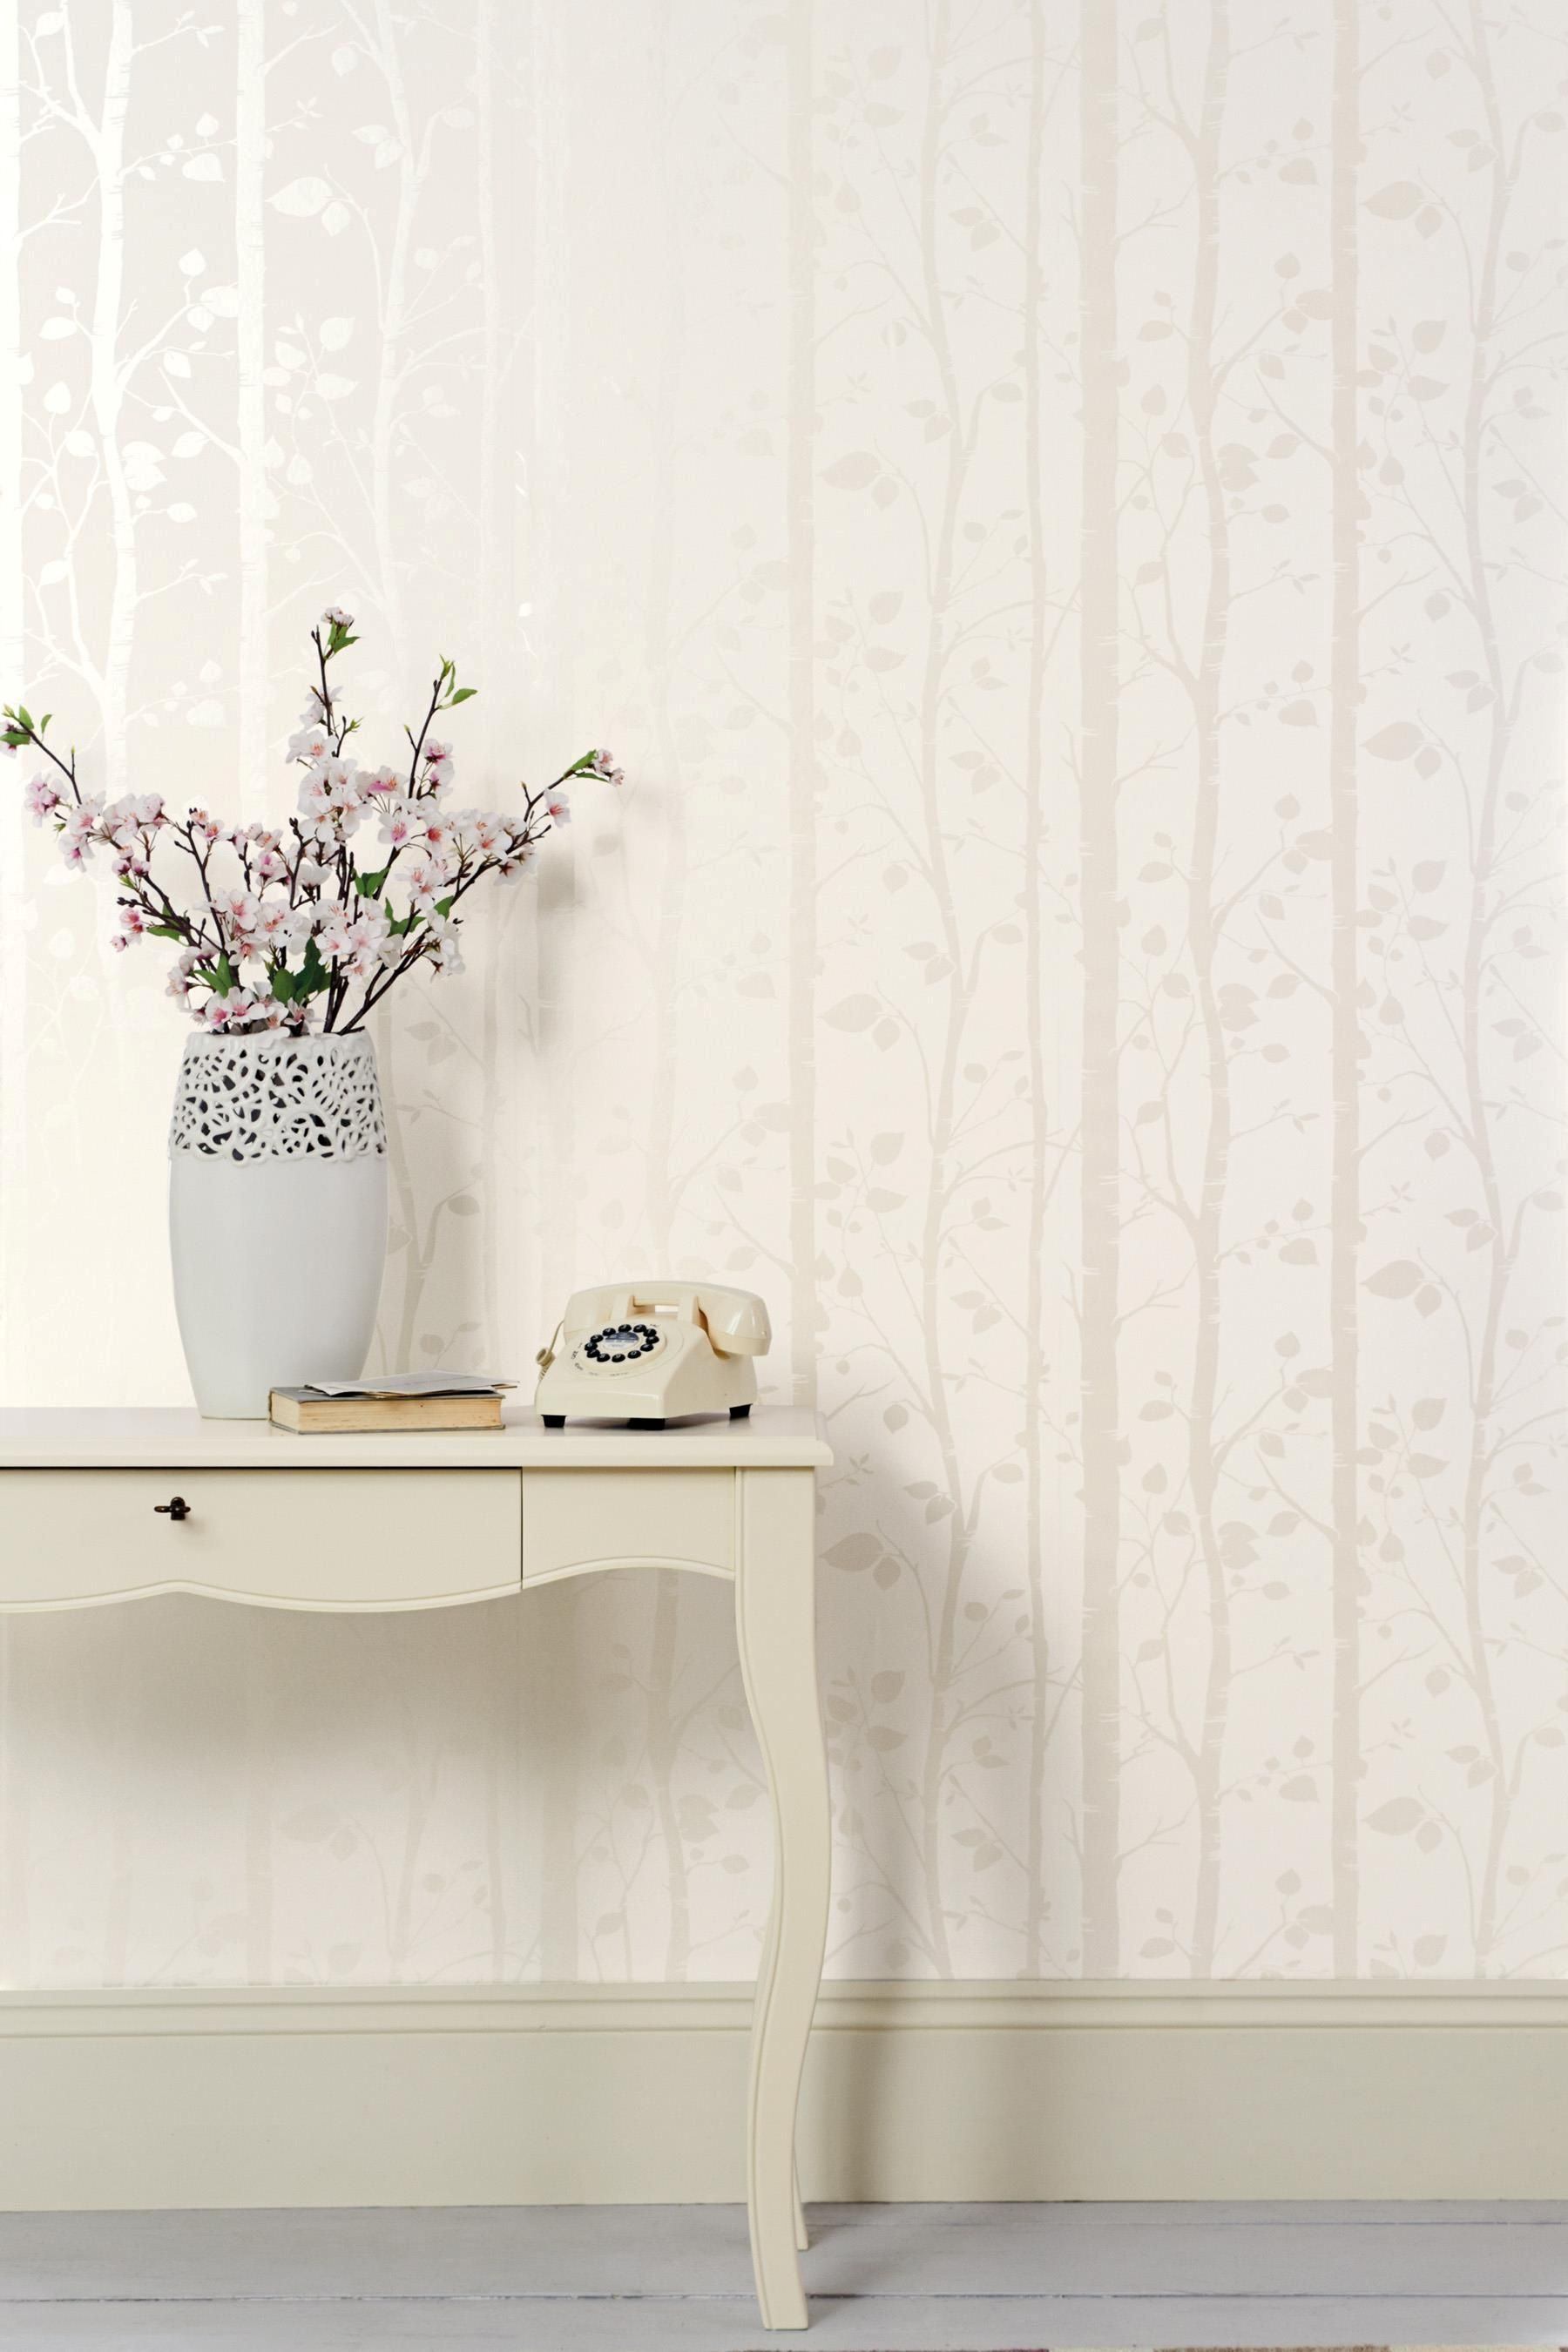 Next Childrens Bedroom Accessories Buy Natural Trees Wallpaper From The Next Uk Online Shop Bedroom